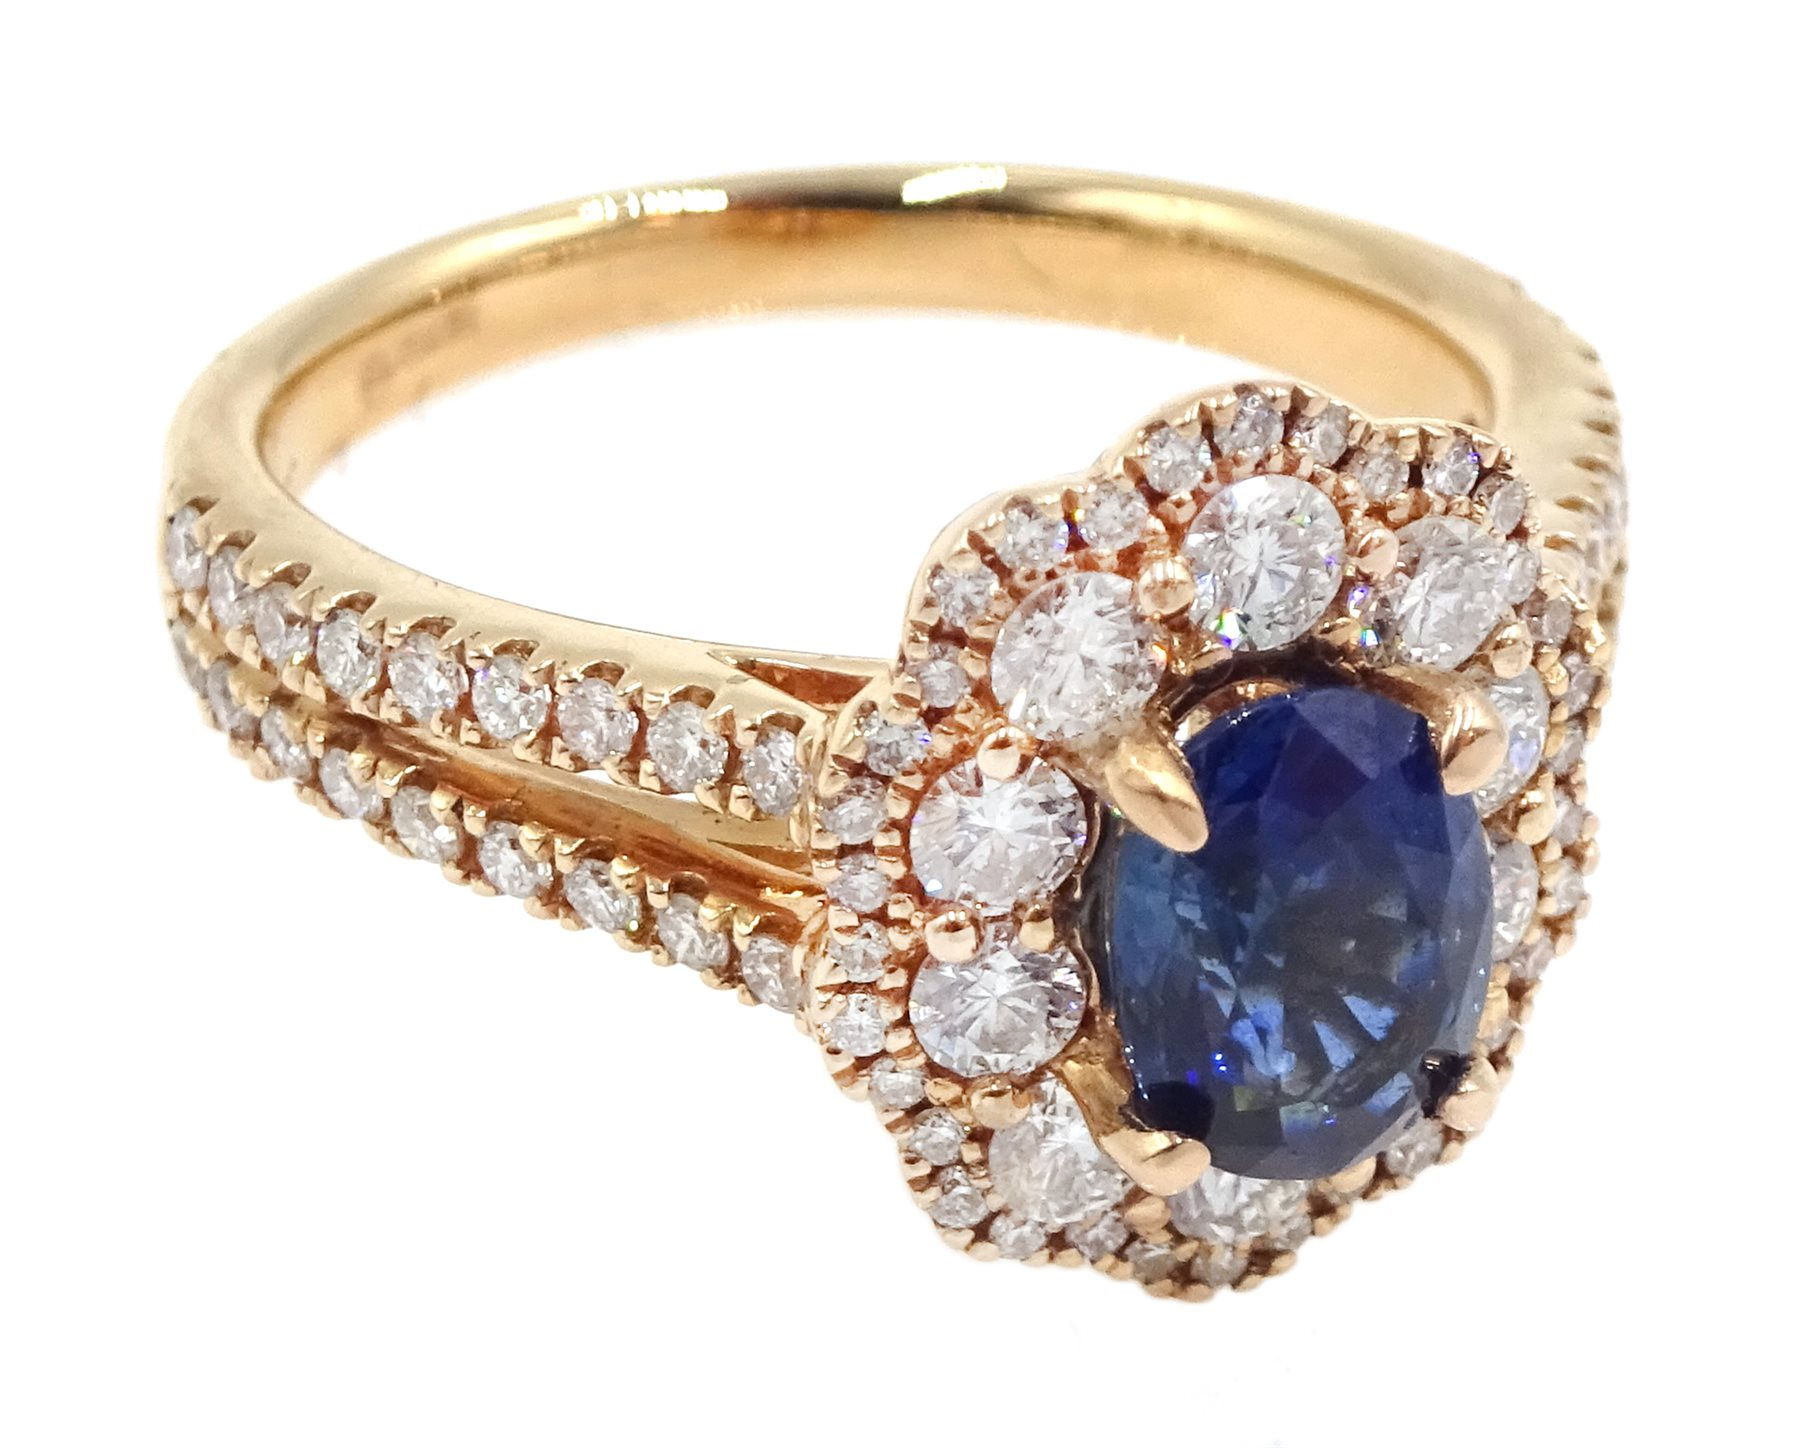 18ct rose gold oval sapphire and diamond cluster ring, with diamond set shoulders, hallmarked, sapph - Image 3 of 6